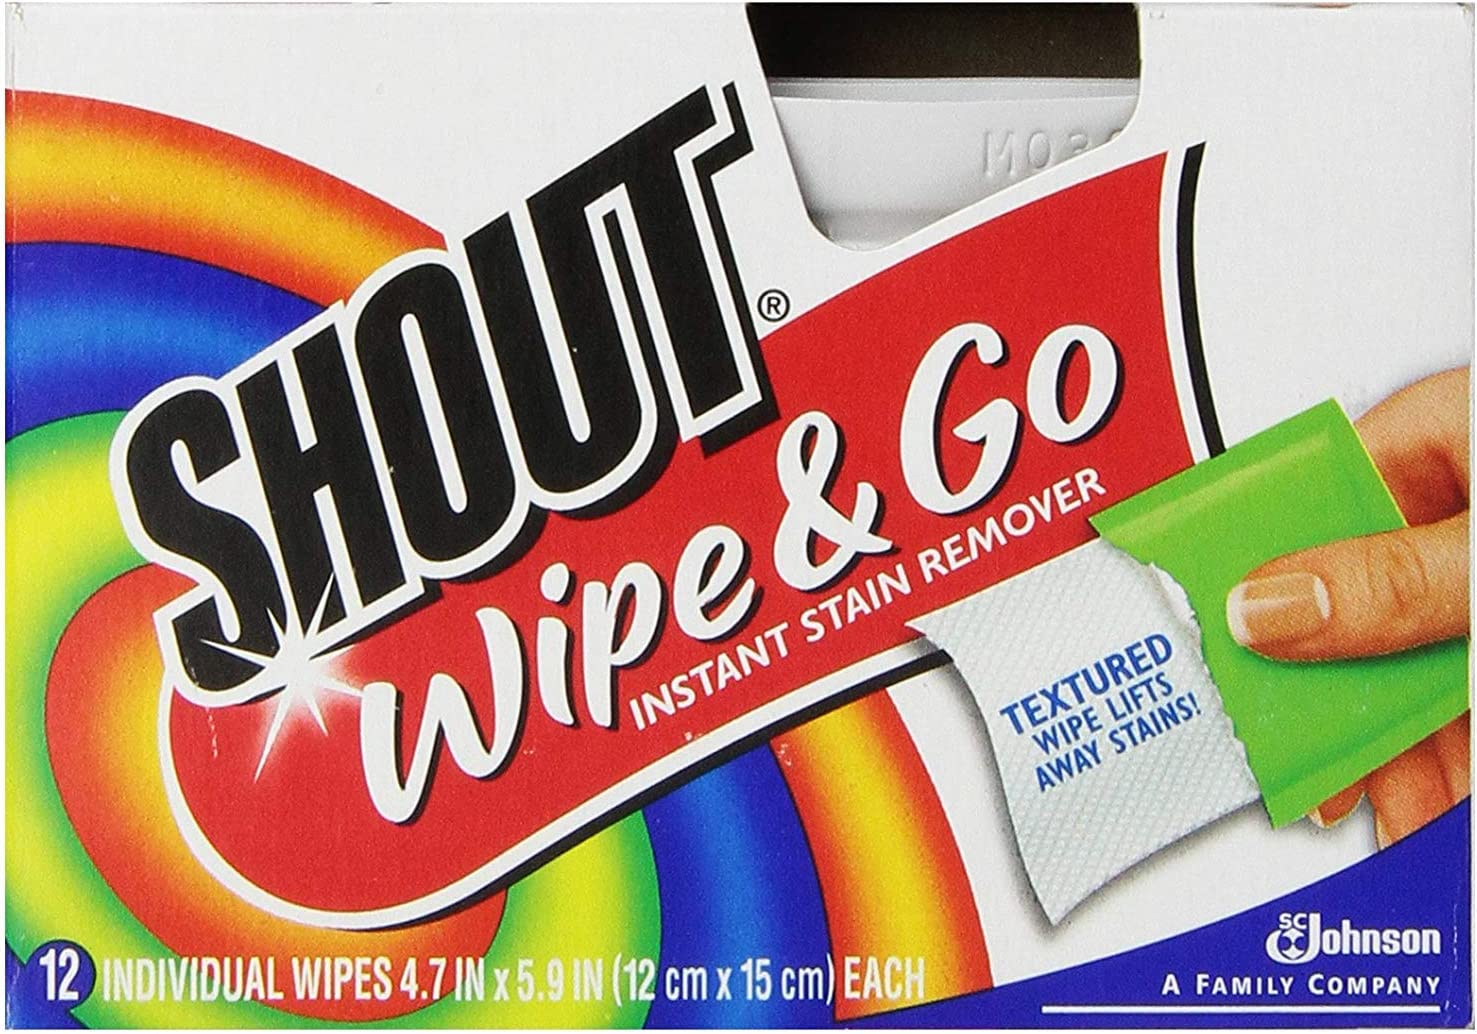 Shout Wipe and Go - Portable Stain Treater Towelettes, 12 Count Each